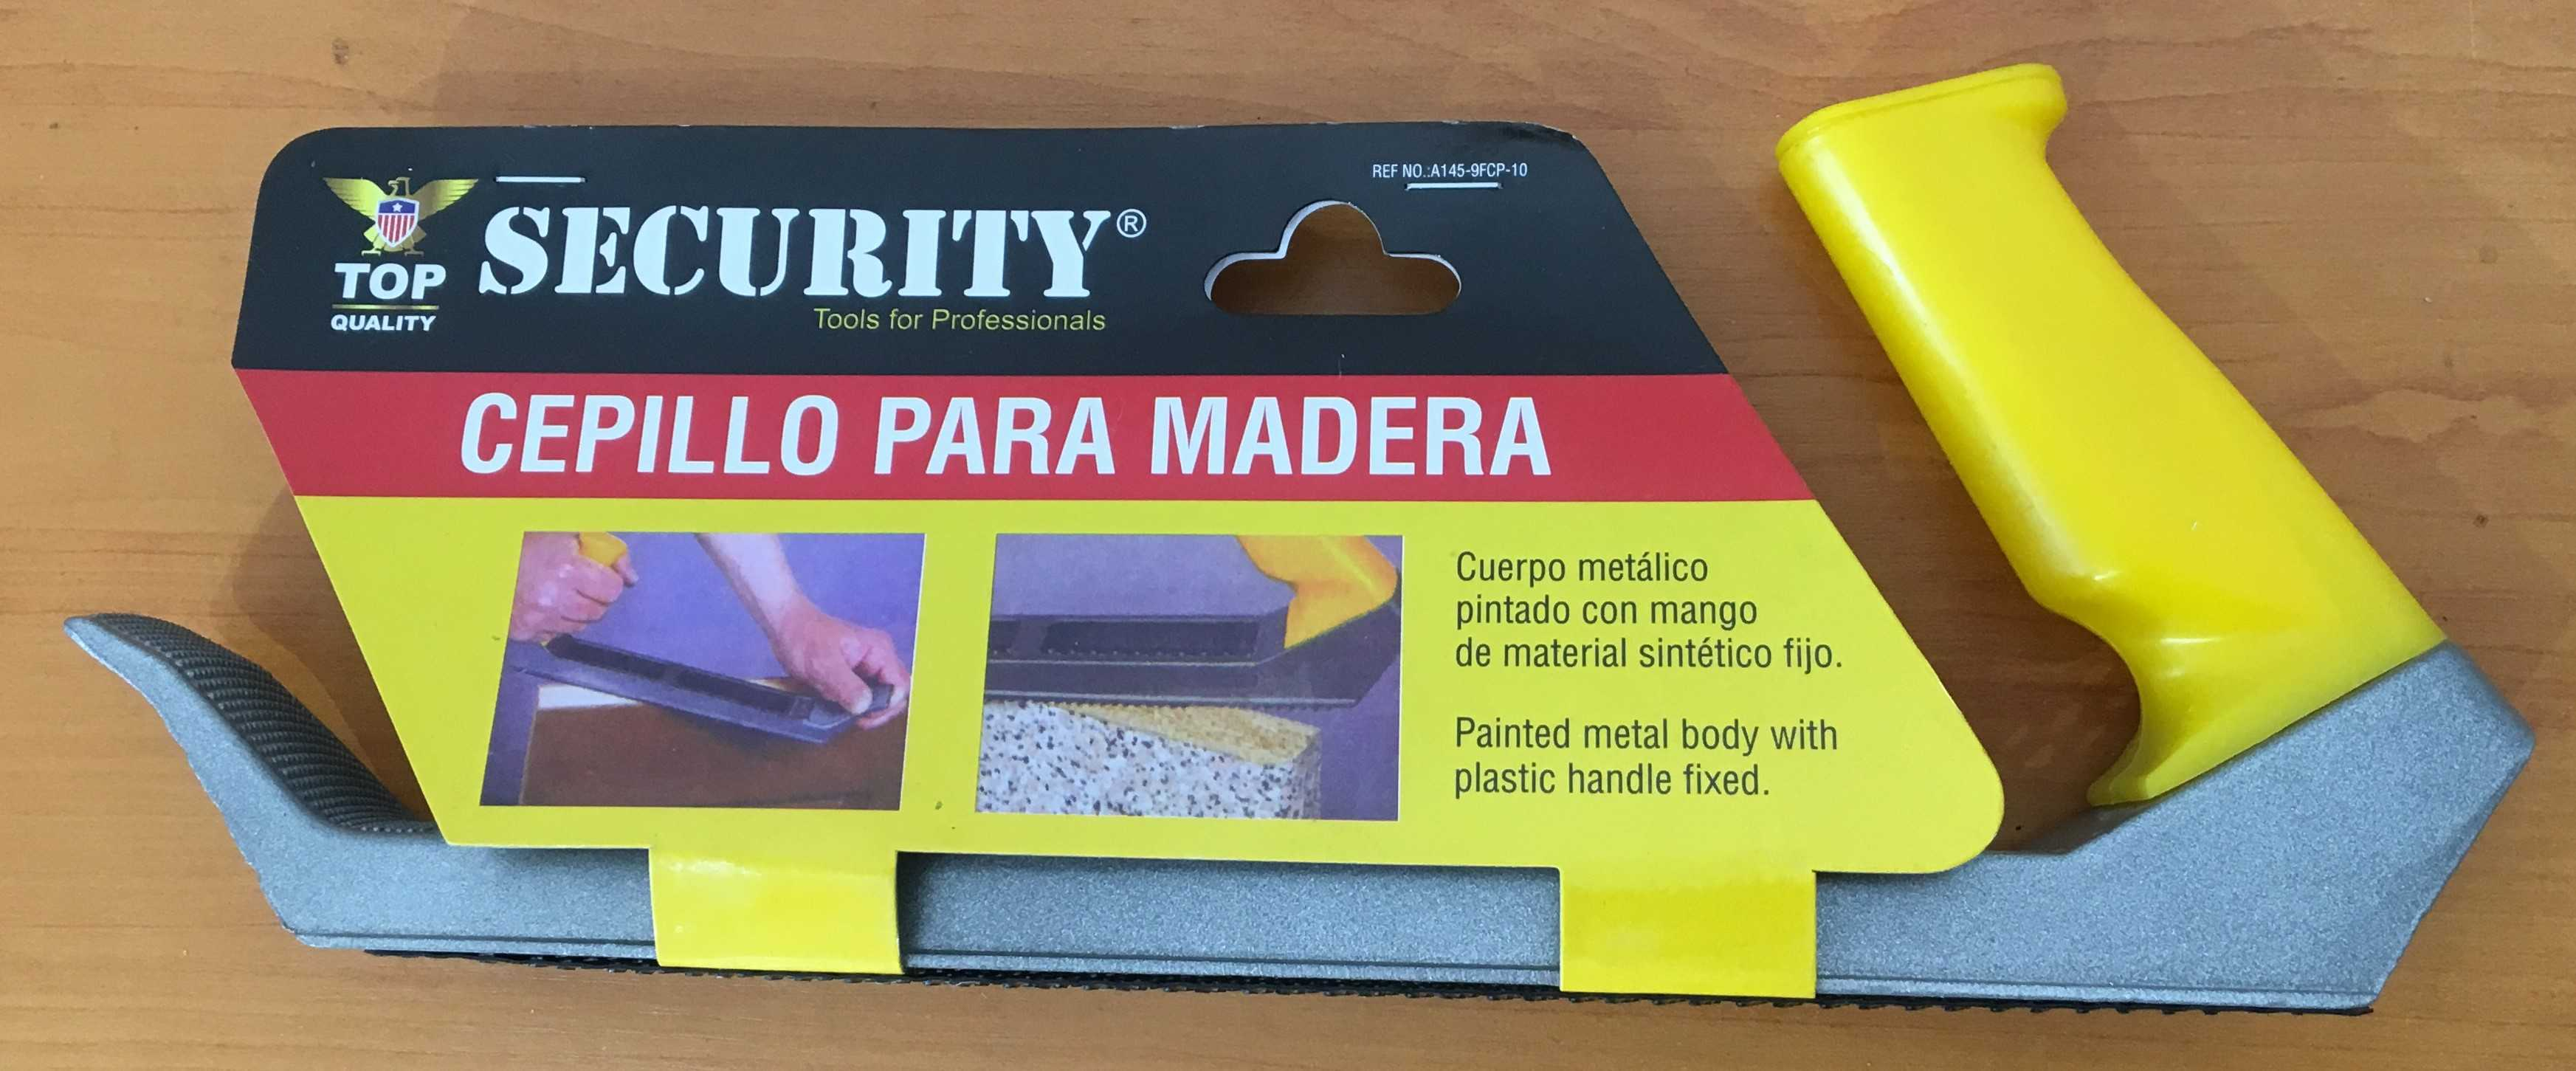 Cepillo Para Carpinetero. A145-9FCP-10. Marca: SECURITY